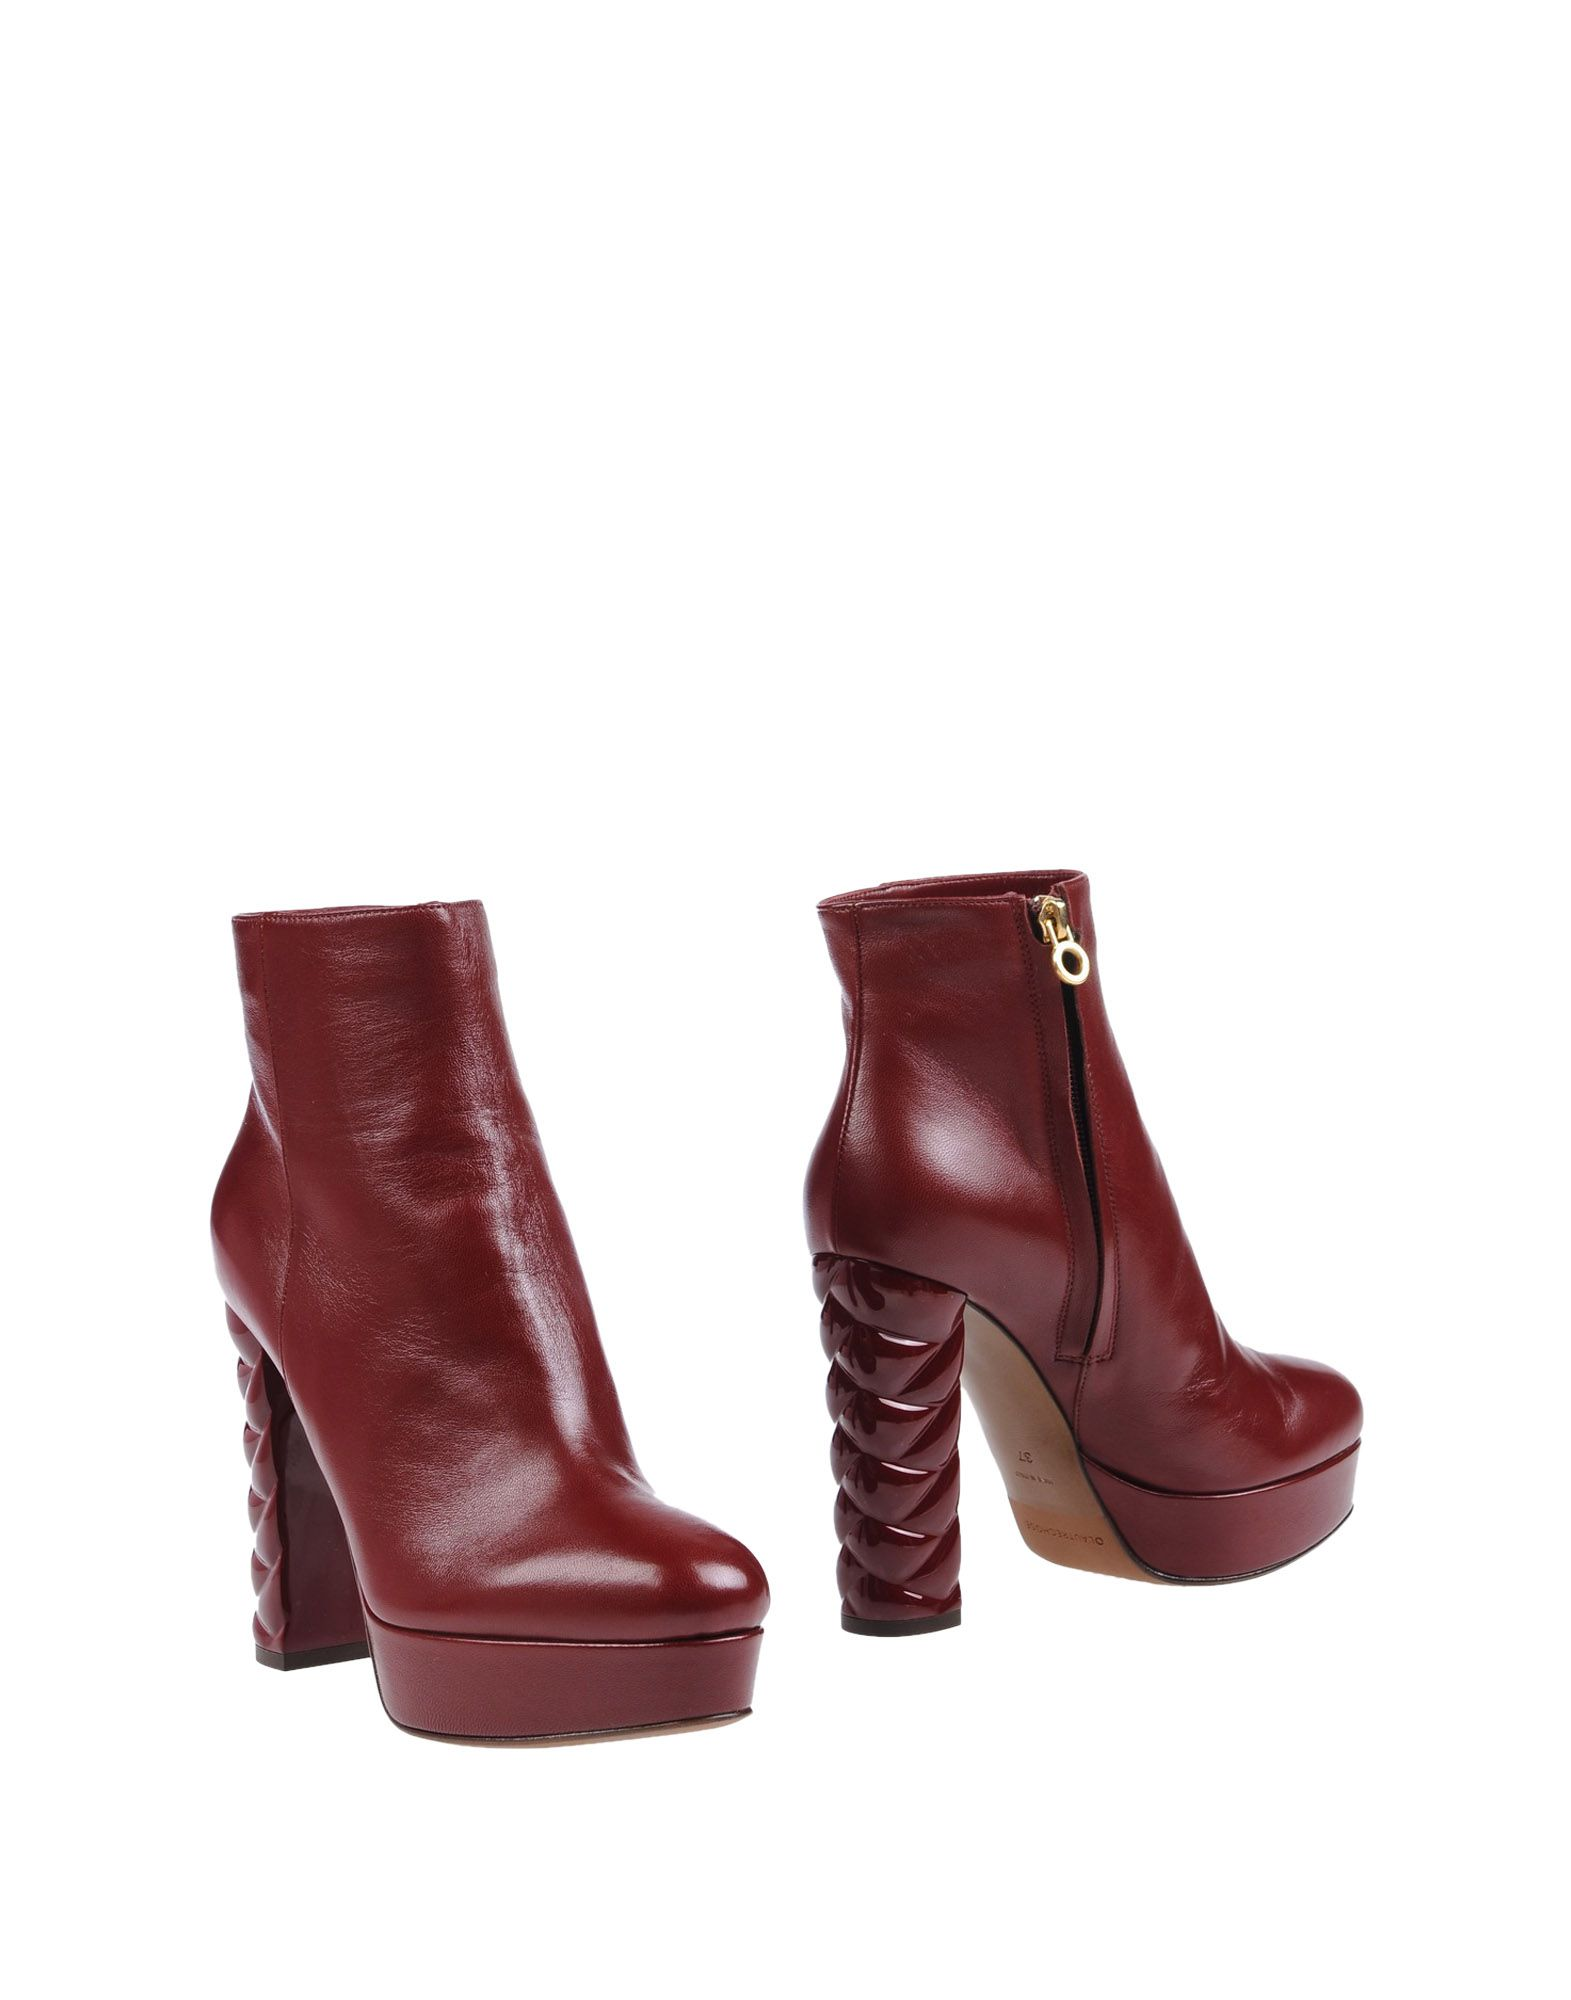 L' - Autre Chose Ankle Boot - L' Women L' Autre Chose Ankle Boots online on  Australia - 11256233NW 445ff5